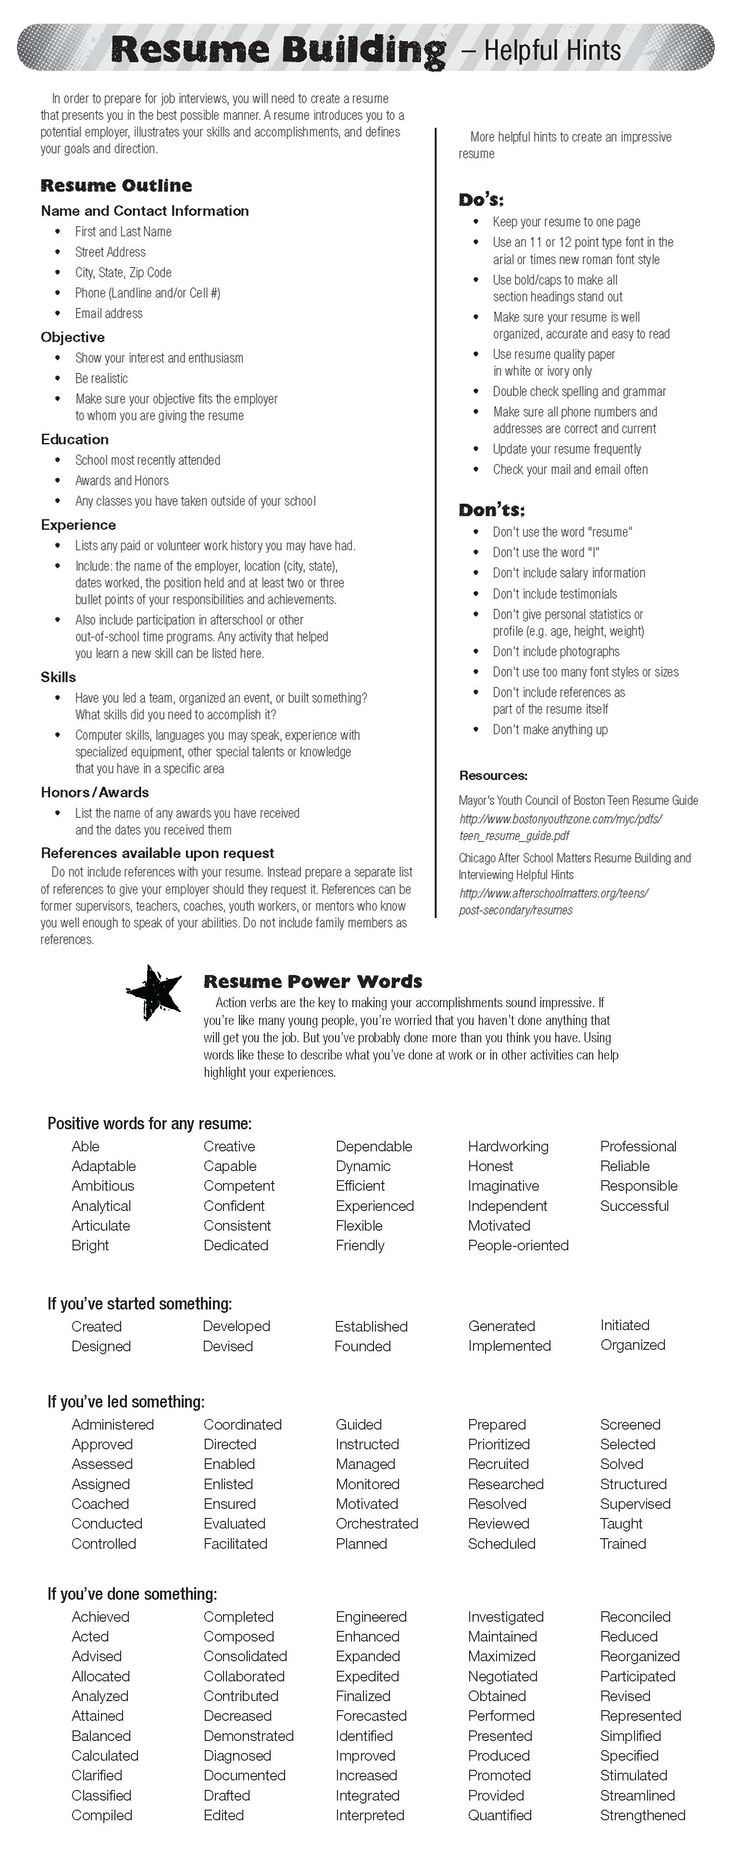 Opposenewapstandardsus  Nice  Ideas About Resume On Pinterest  Cv Format Resume Cv And  With Engaging  Ideas About Resume On Pinterest  Cv Format Resume Cv And Resume Templates With Cute Font Size For Resumes Also Volunteering Resume In Addition Video Game Resume And Construction Project Manager Resume Sample As Well As Updating A Resume Additionally Thank You For Submitting Your Resume From Pinterestcom With Opposenewapstandardsus  Engaging  Ideas About Resume On Pinterest  Cv Format Resume Cv And  With Cute  Ideas About Resume On Pinterest  Cv Format Resume Cv And Resume Templates And Nice Font Size For Resumes Also Volunteering Resume In Addition Video Game Resume From Pinterestcom